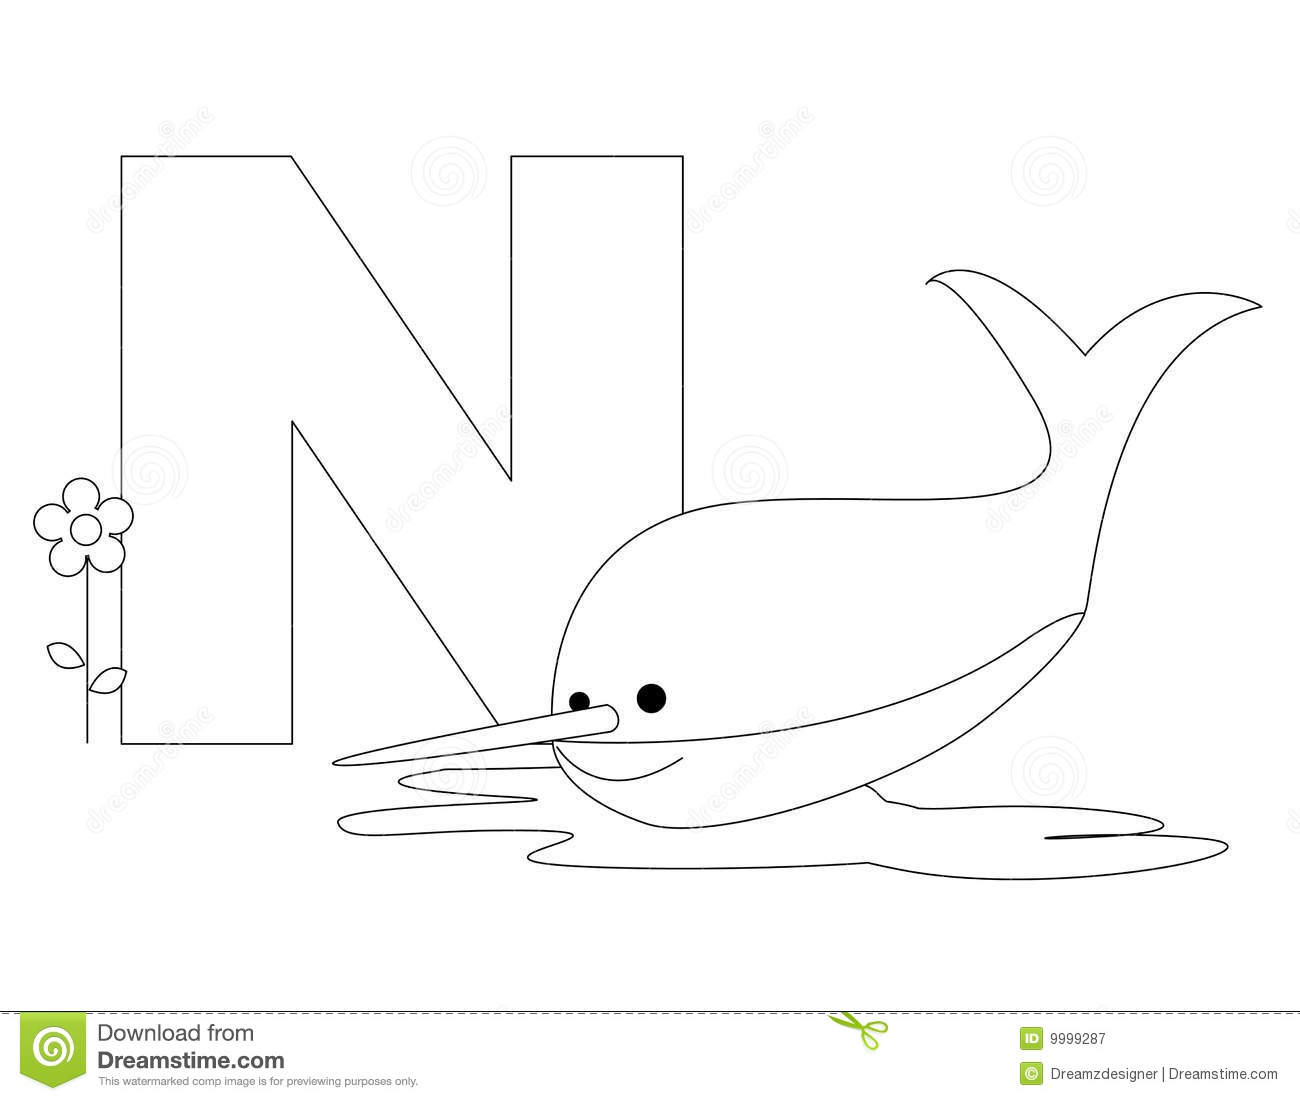 on white background coloring book page graphic n is for narwhal